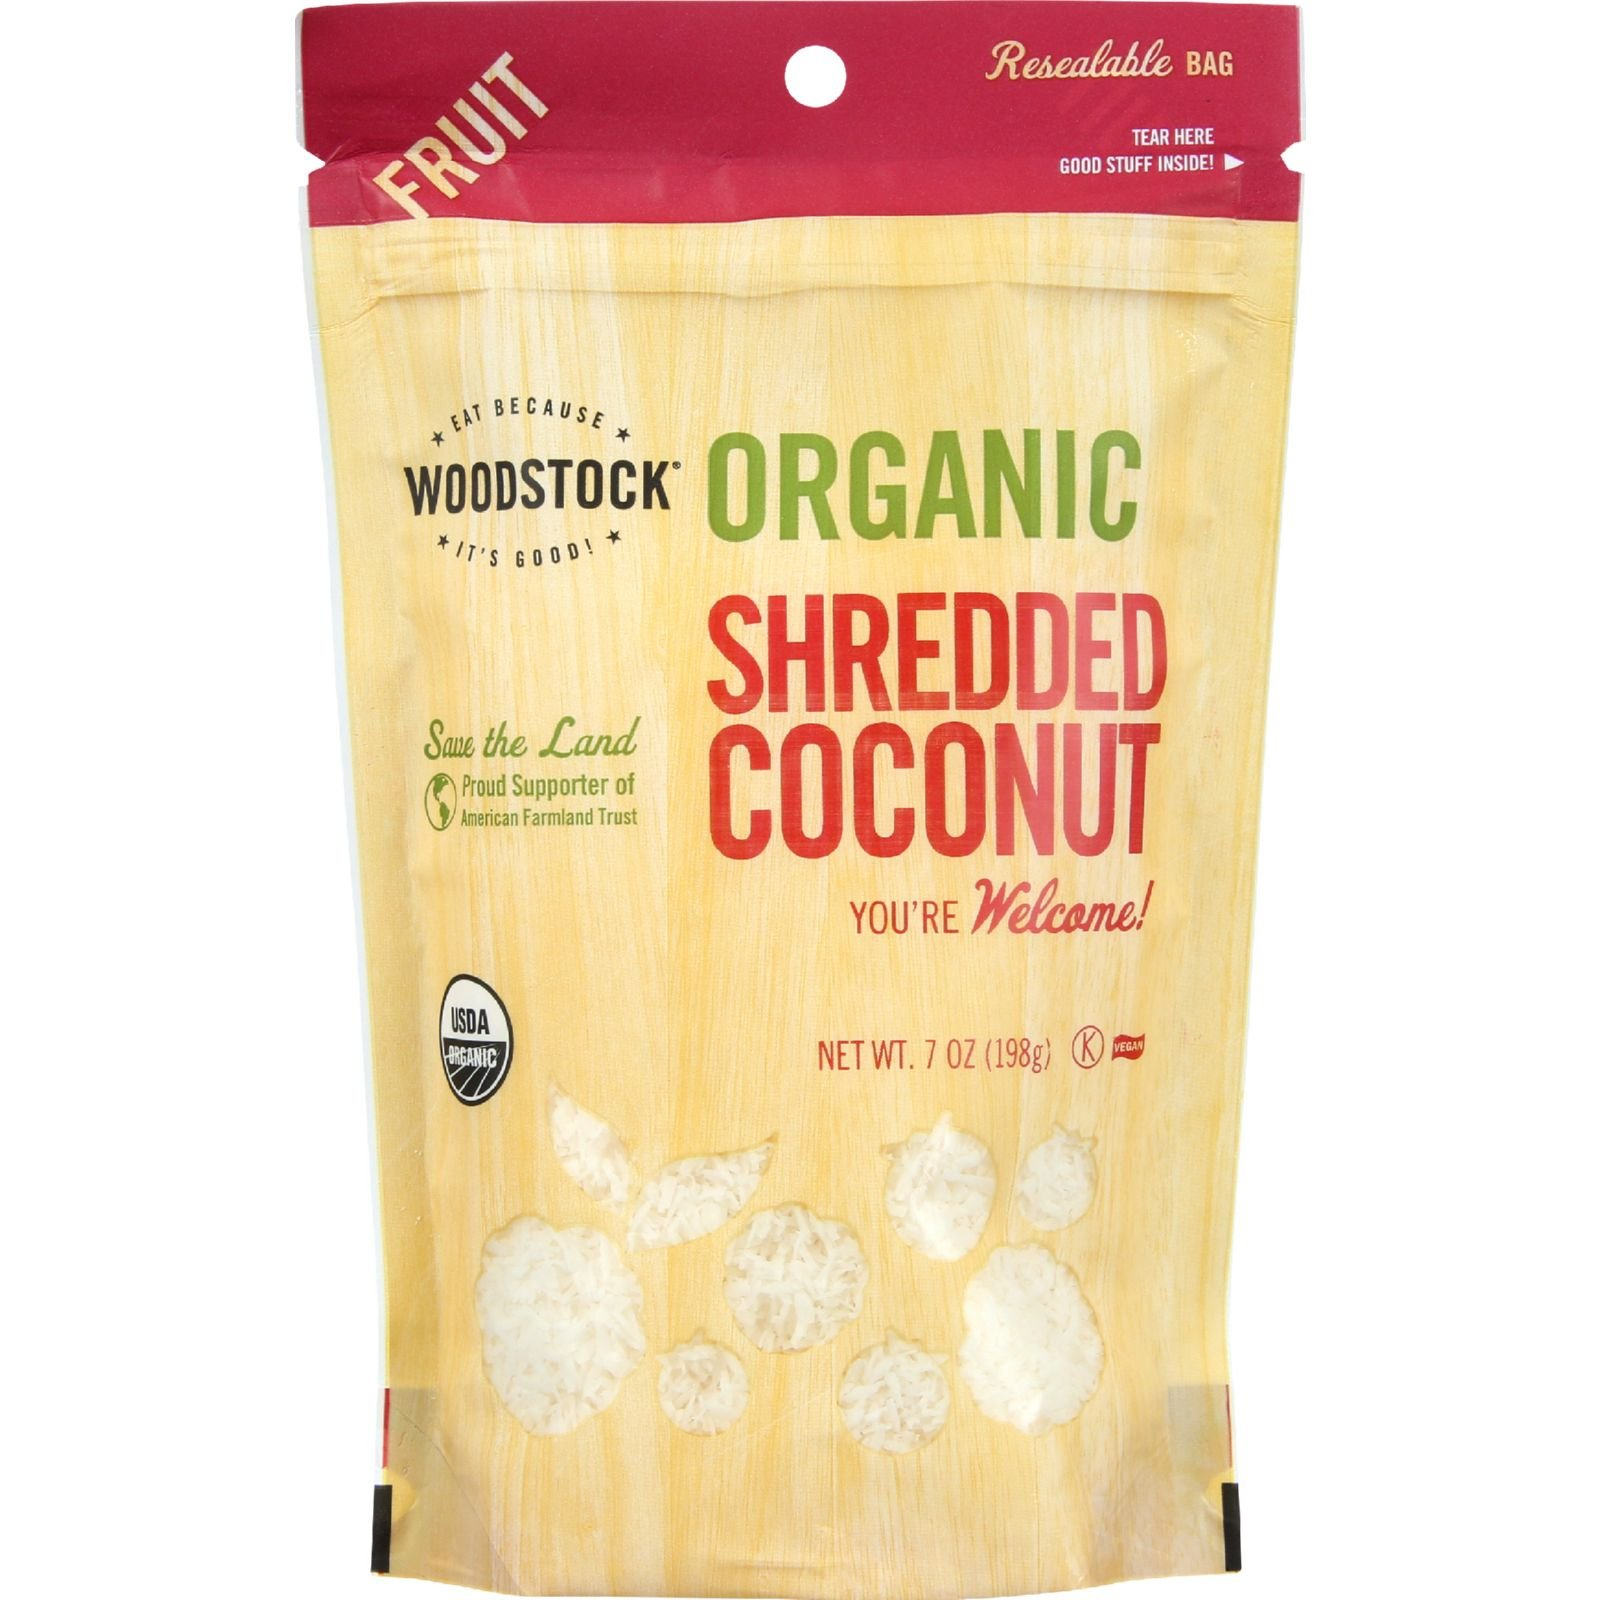 Woodstock Fruit - Organic - Coconut - Shredded - Raw - 7 oz - case of 8 - 95%+ Organic - Vegan